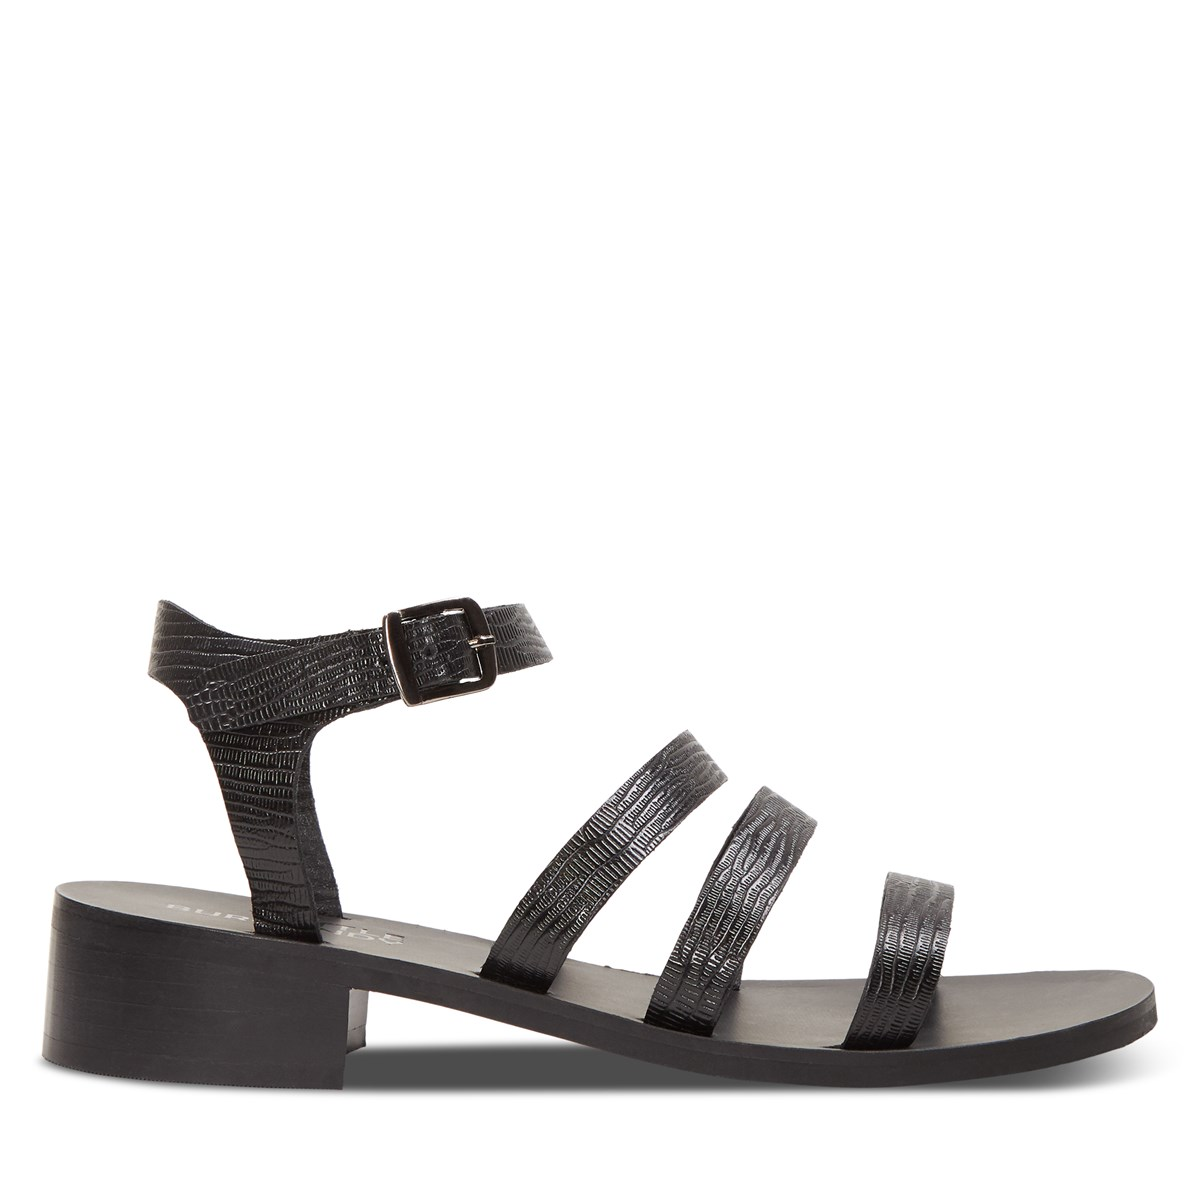 Women's Sadie Heeled Strapped Sandals in Black